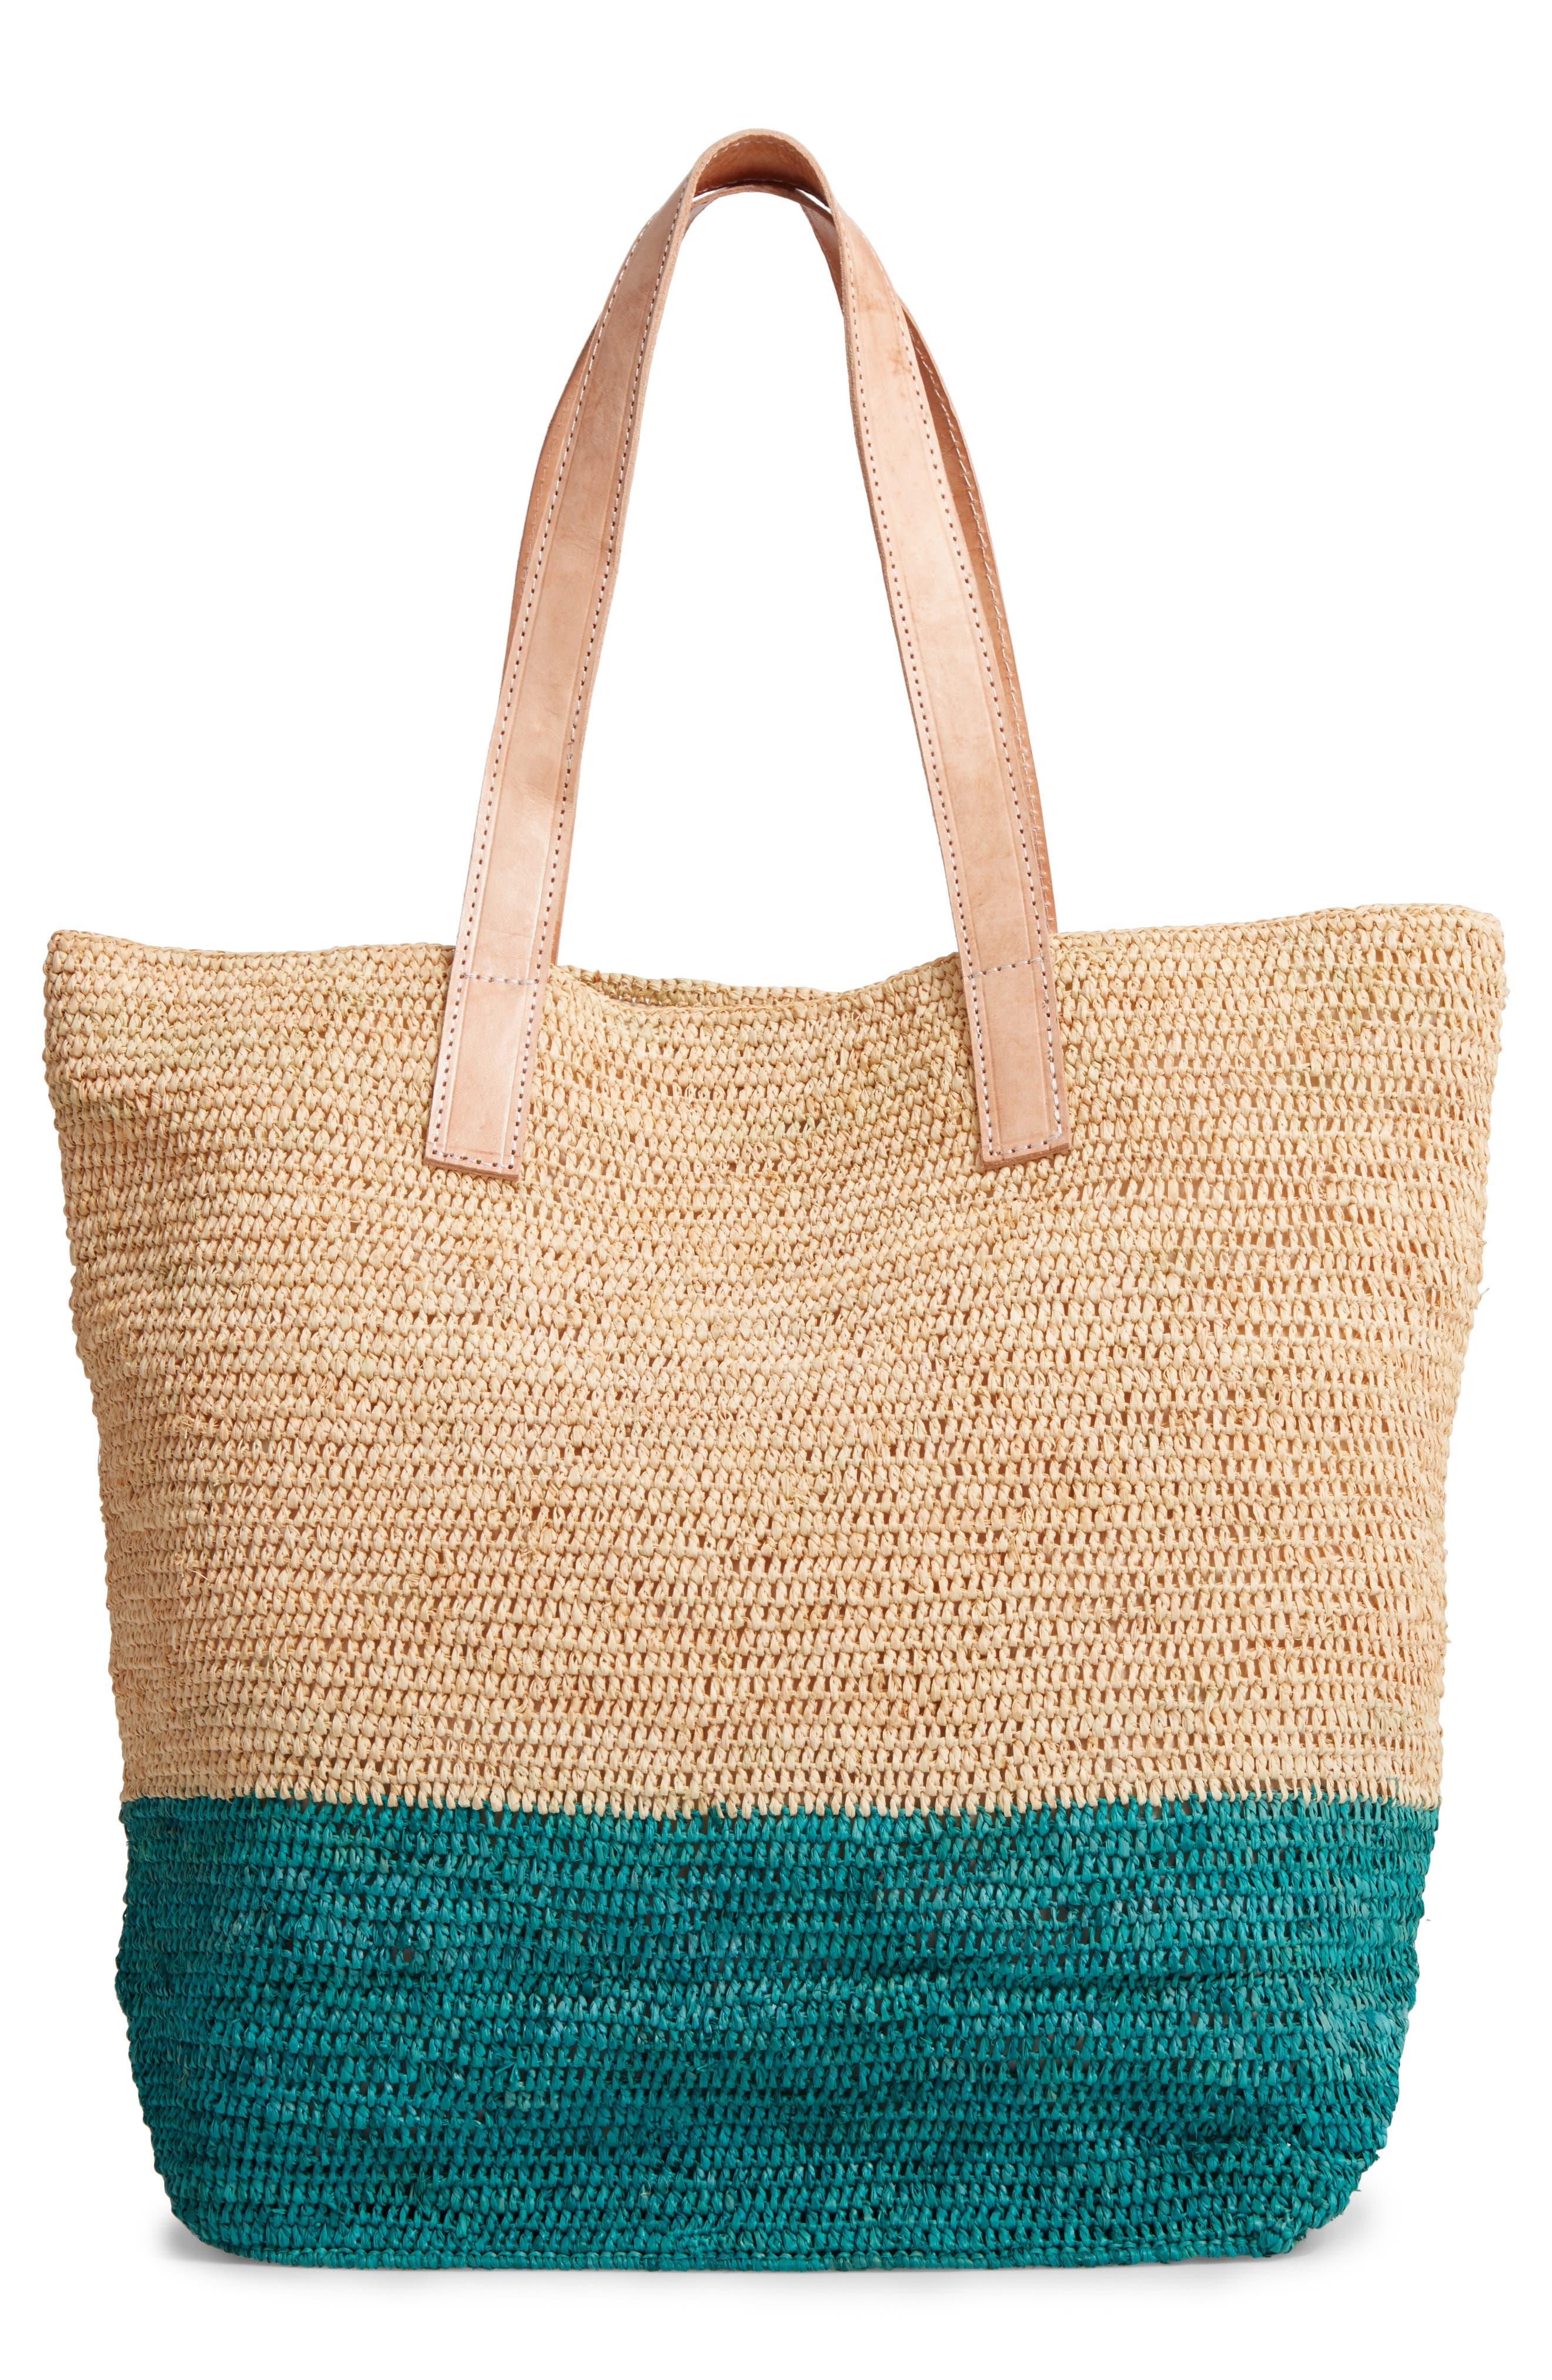 Montauk Woven Tote with Pom Charms,                             Main thumbnail 1, color,                             401